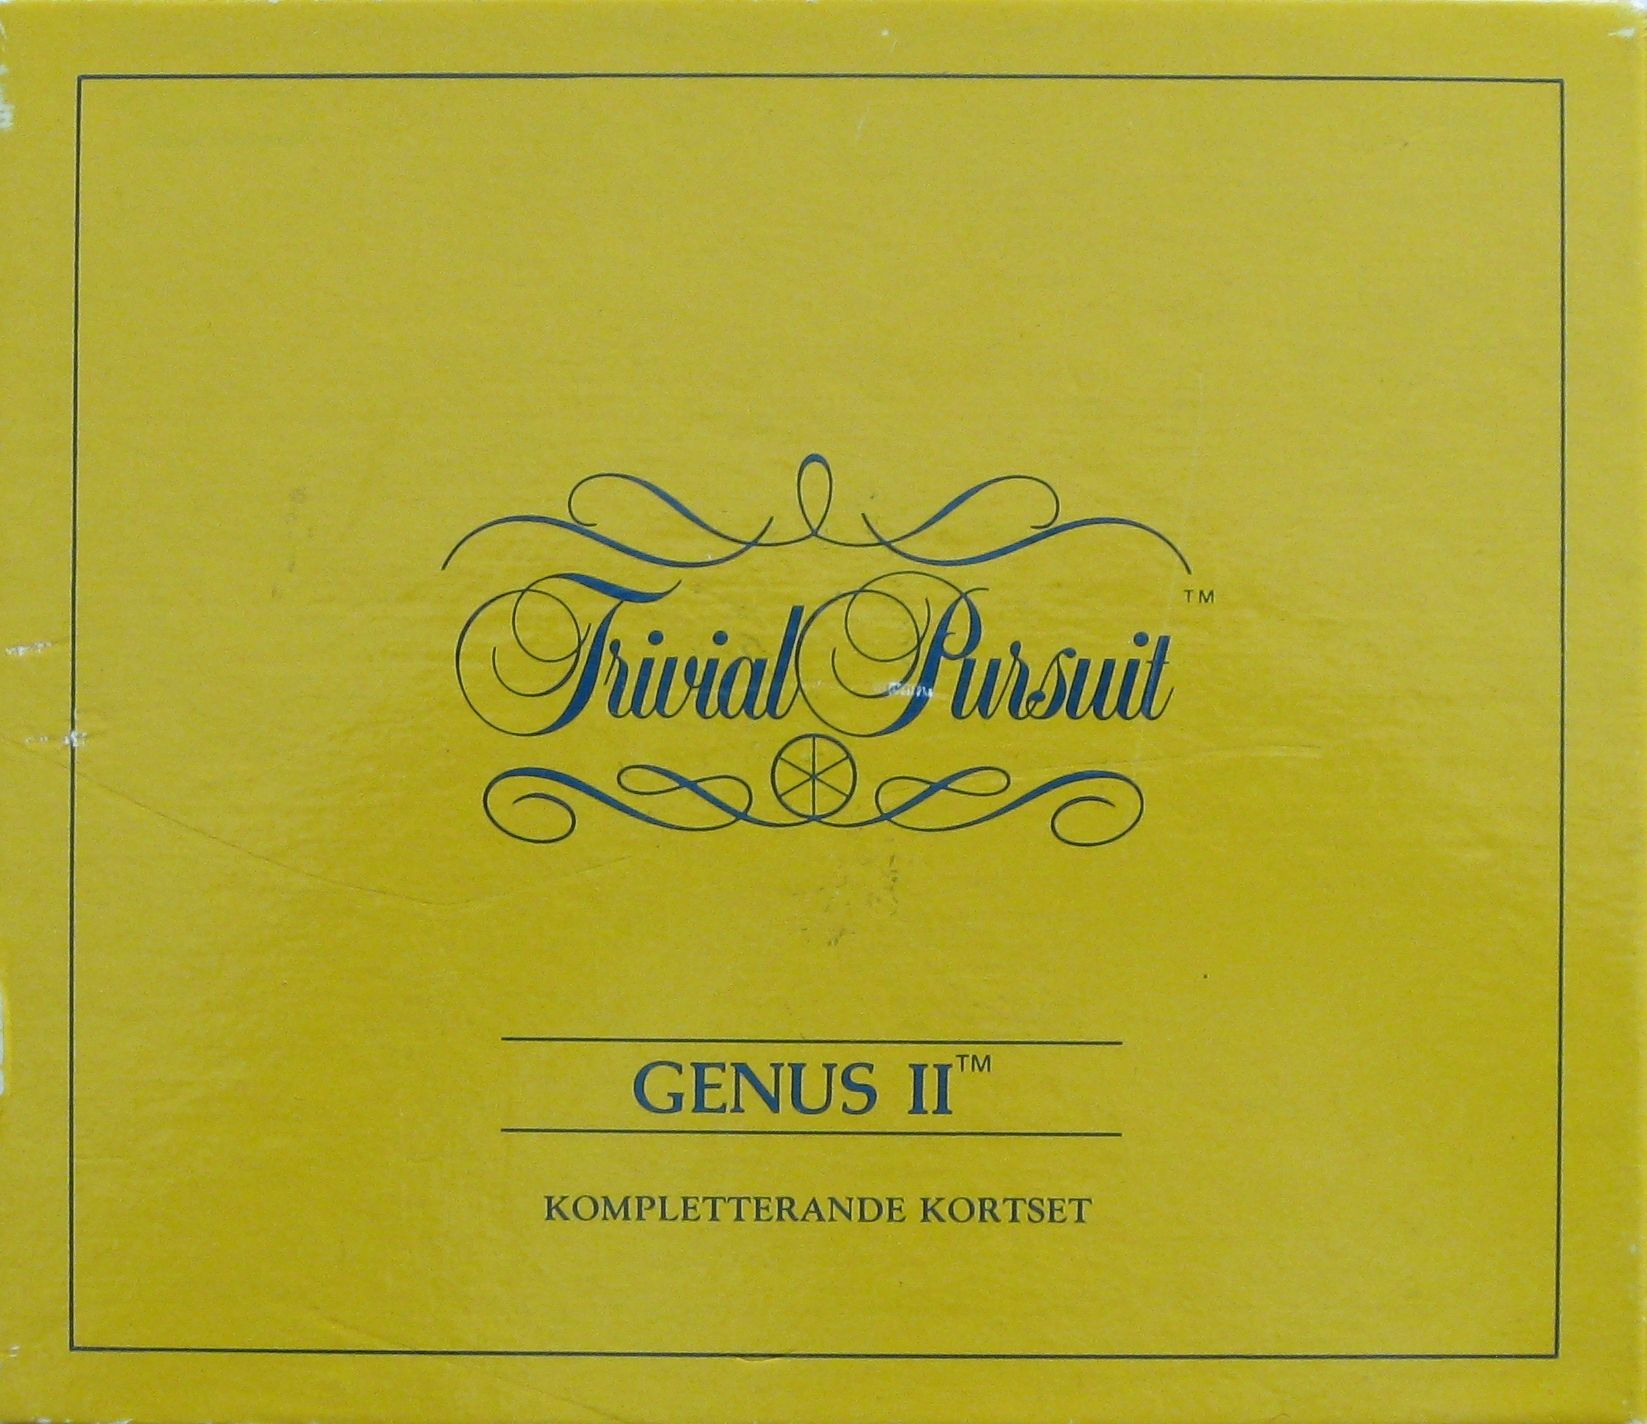 Trivial Pursuit: Genus II